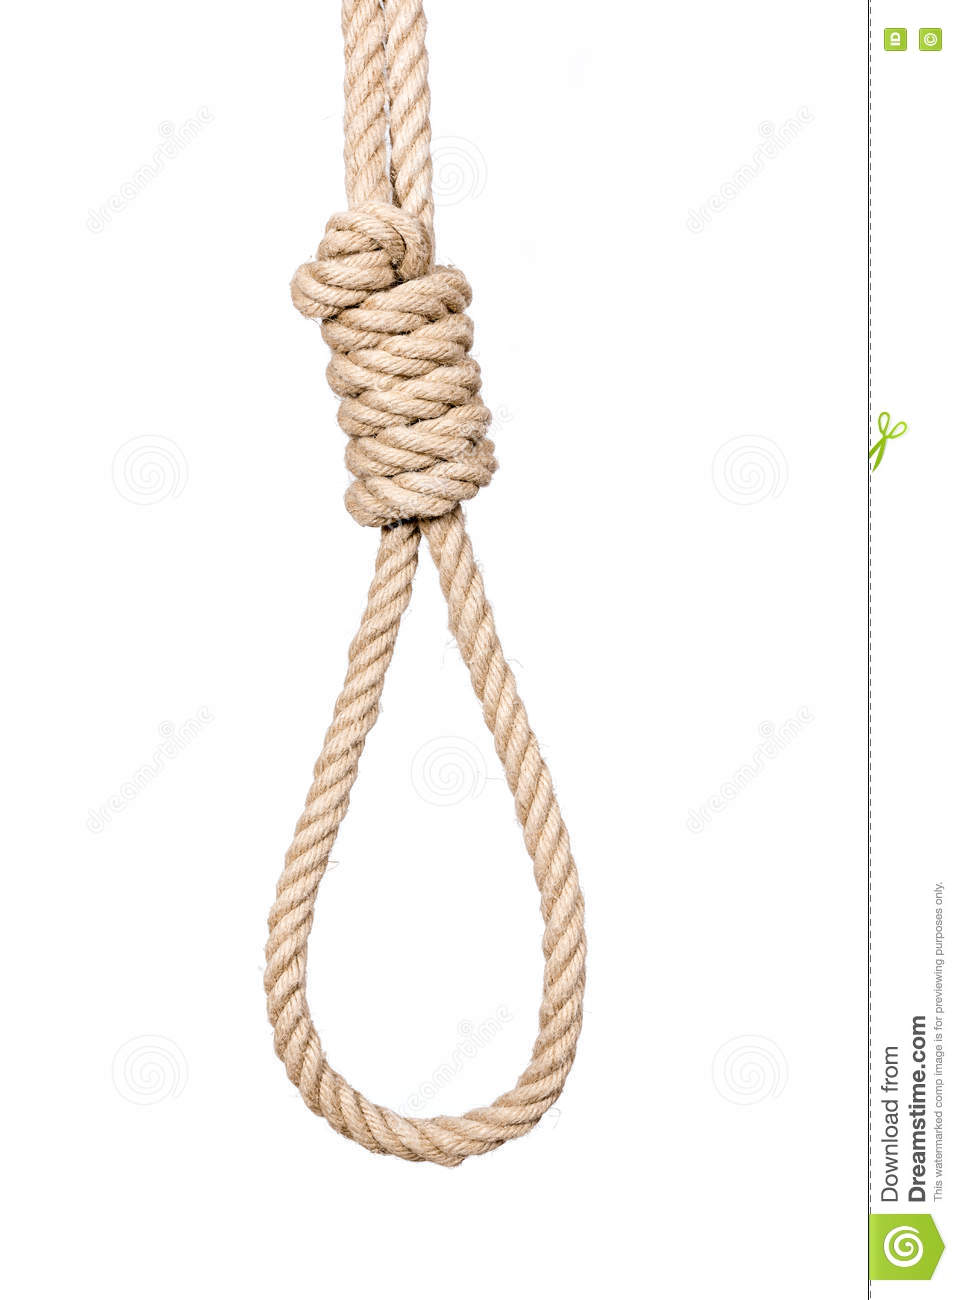 Hangman's Noose. Stock Photo - Image: 79741423